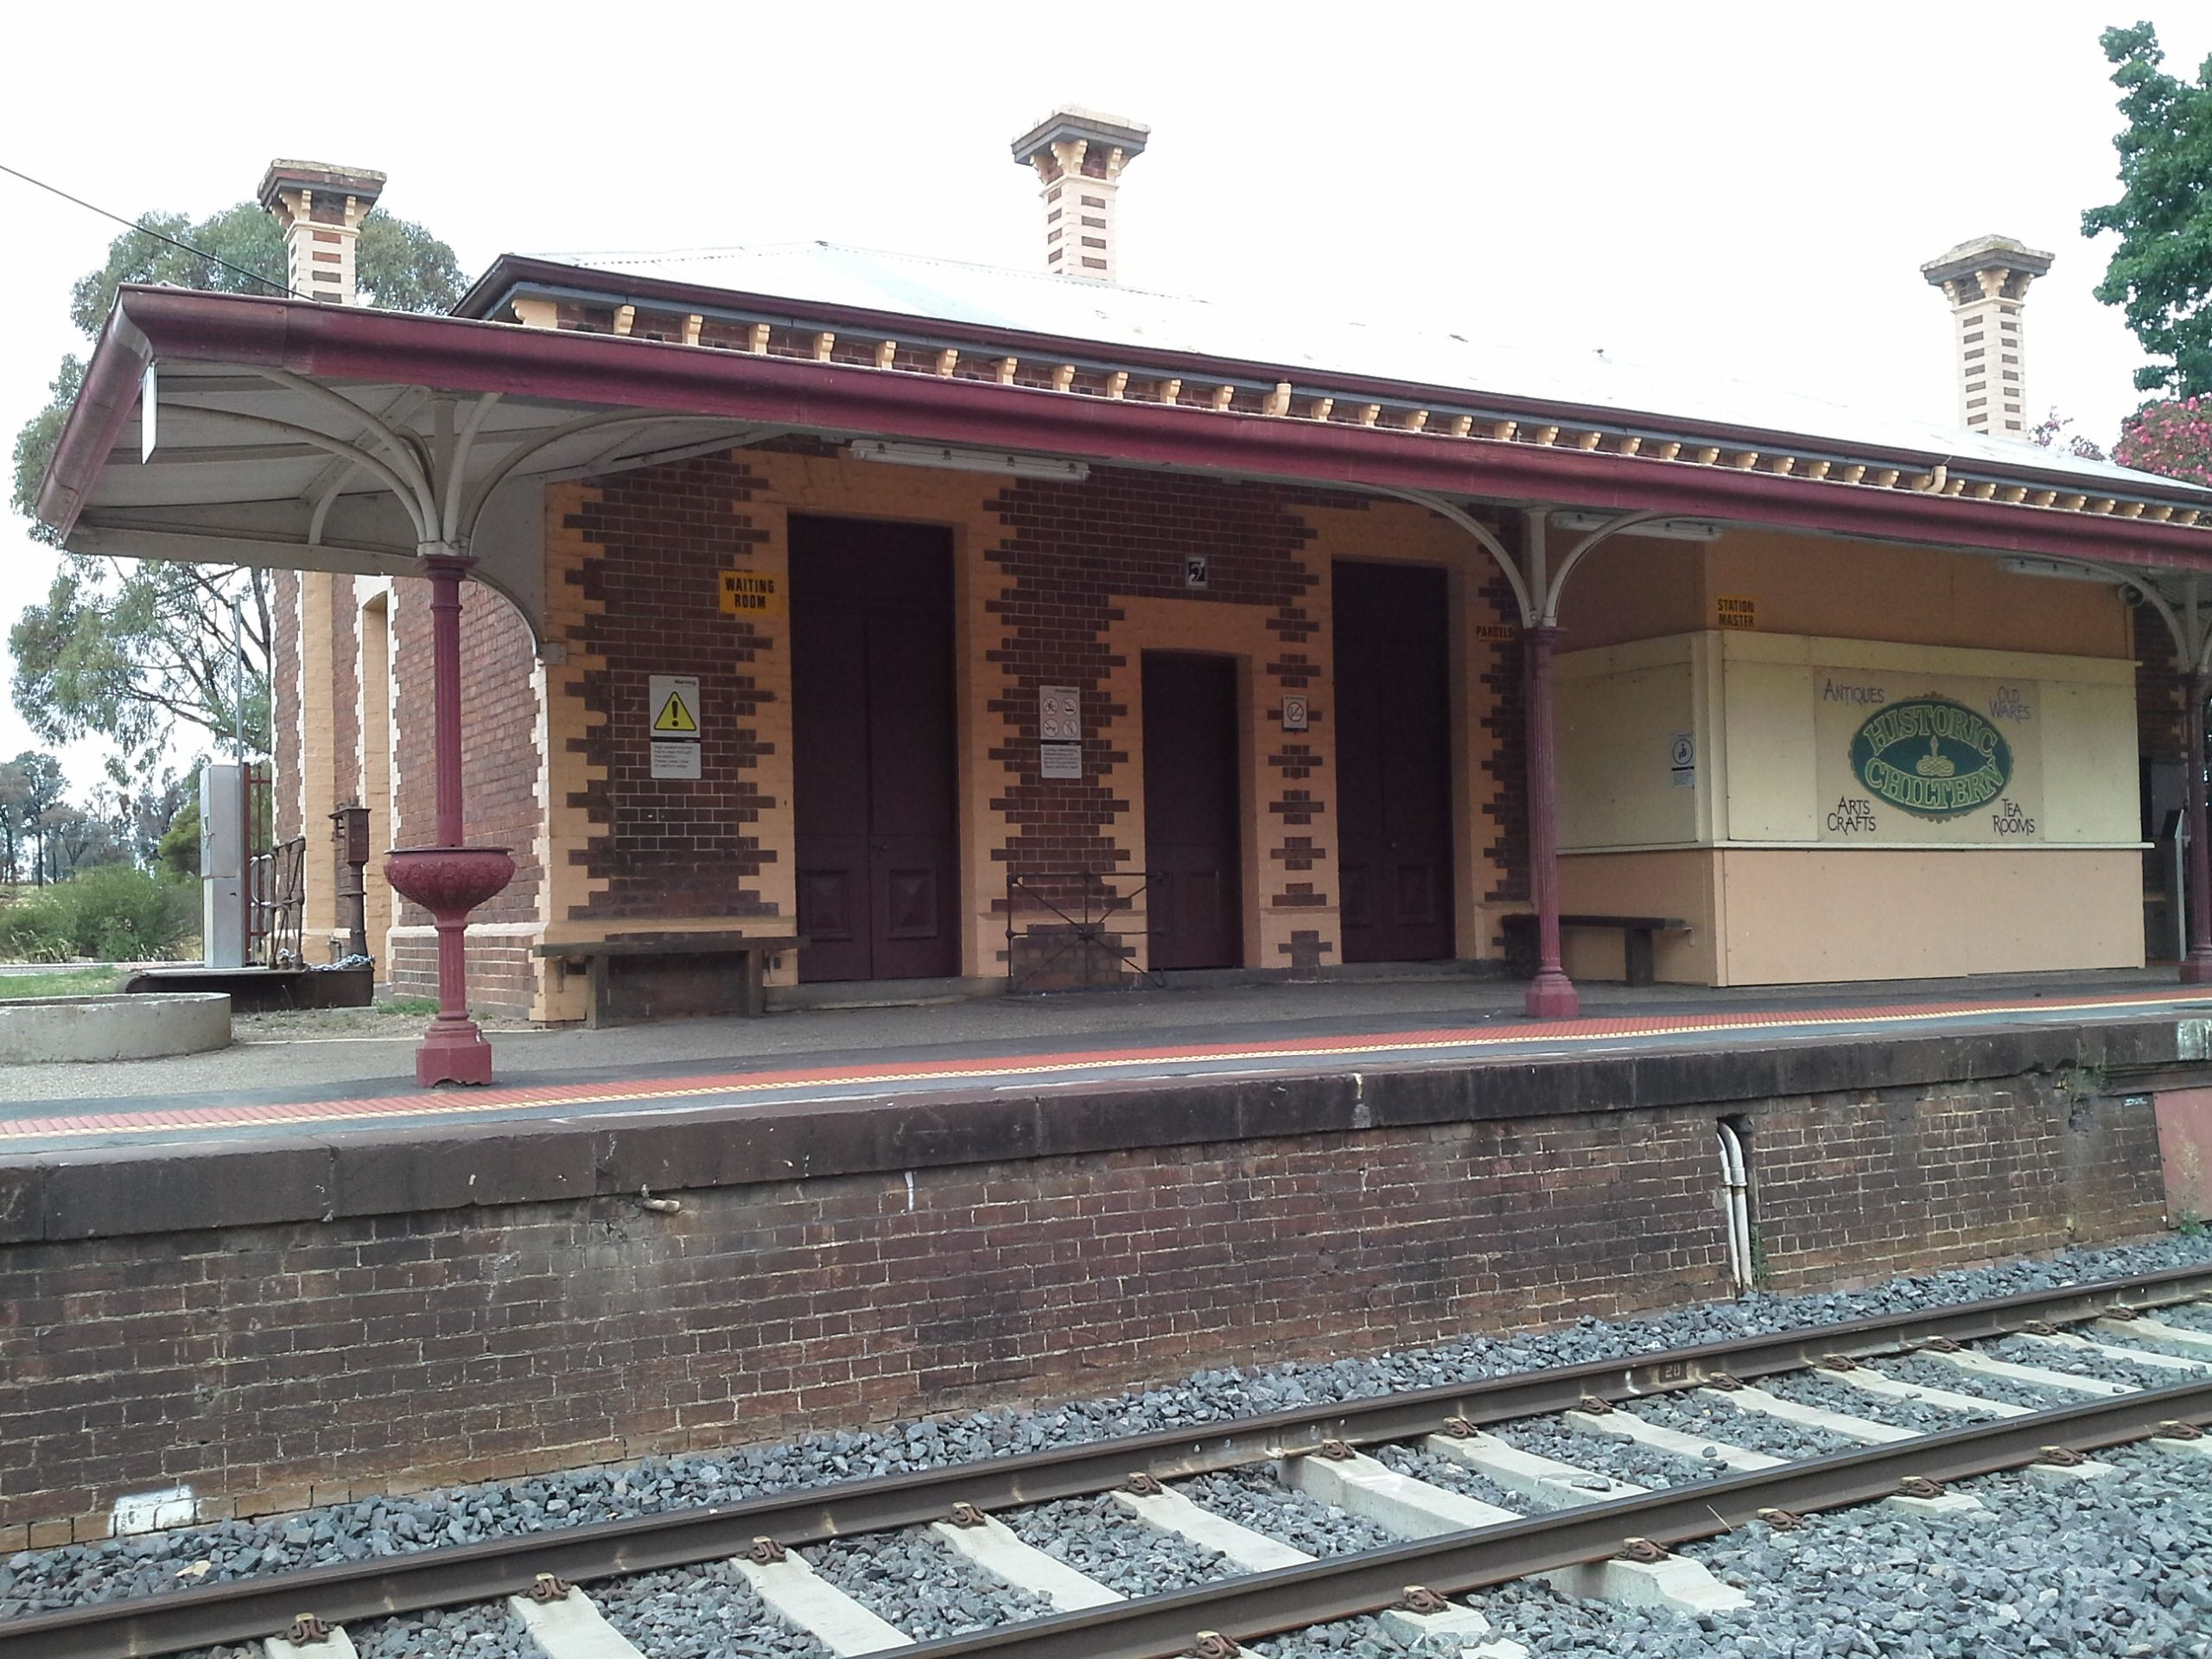 Chiltern Railway Stn Still In Use